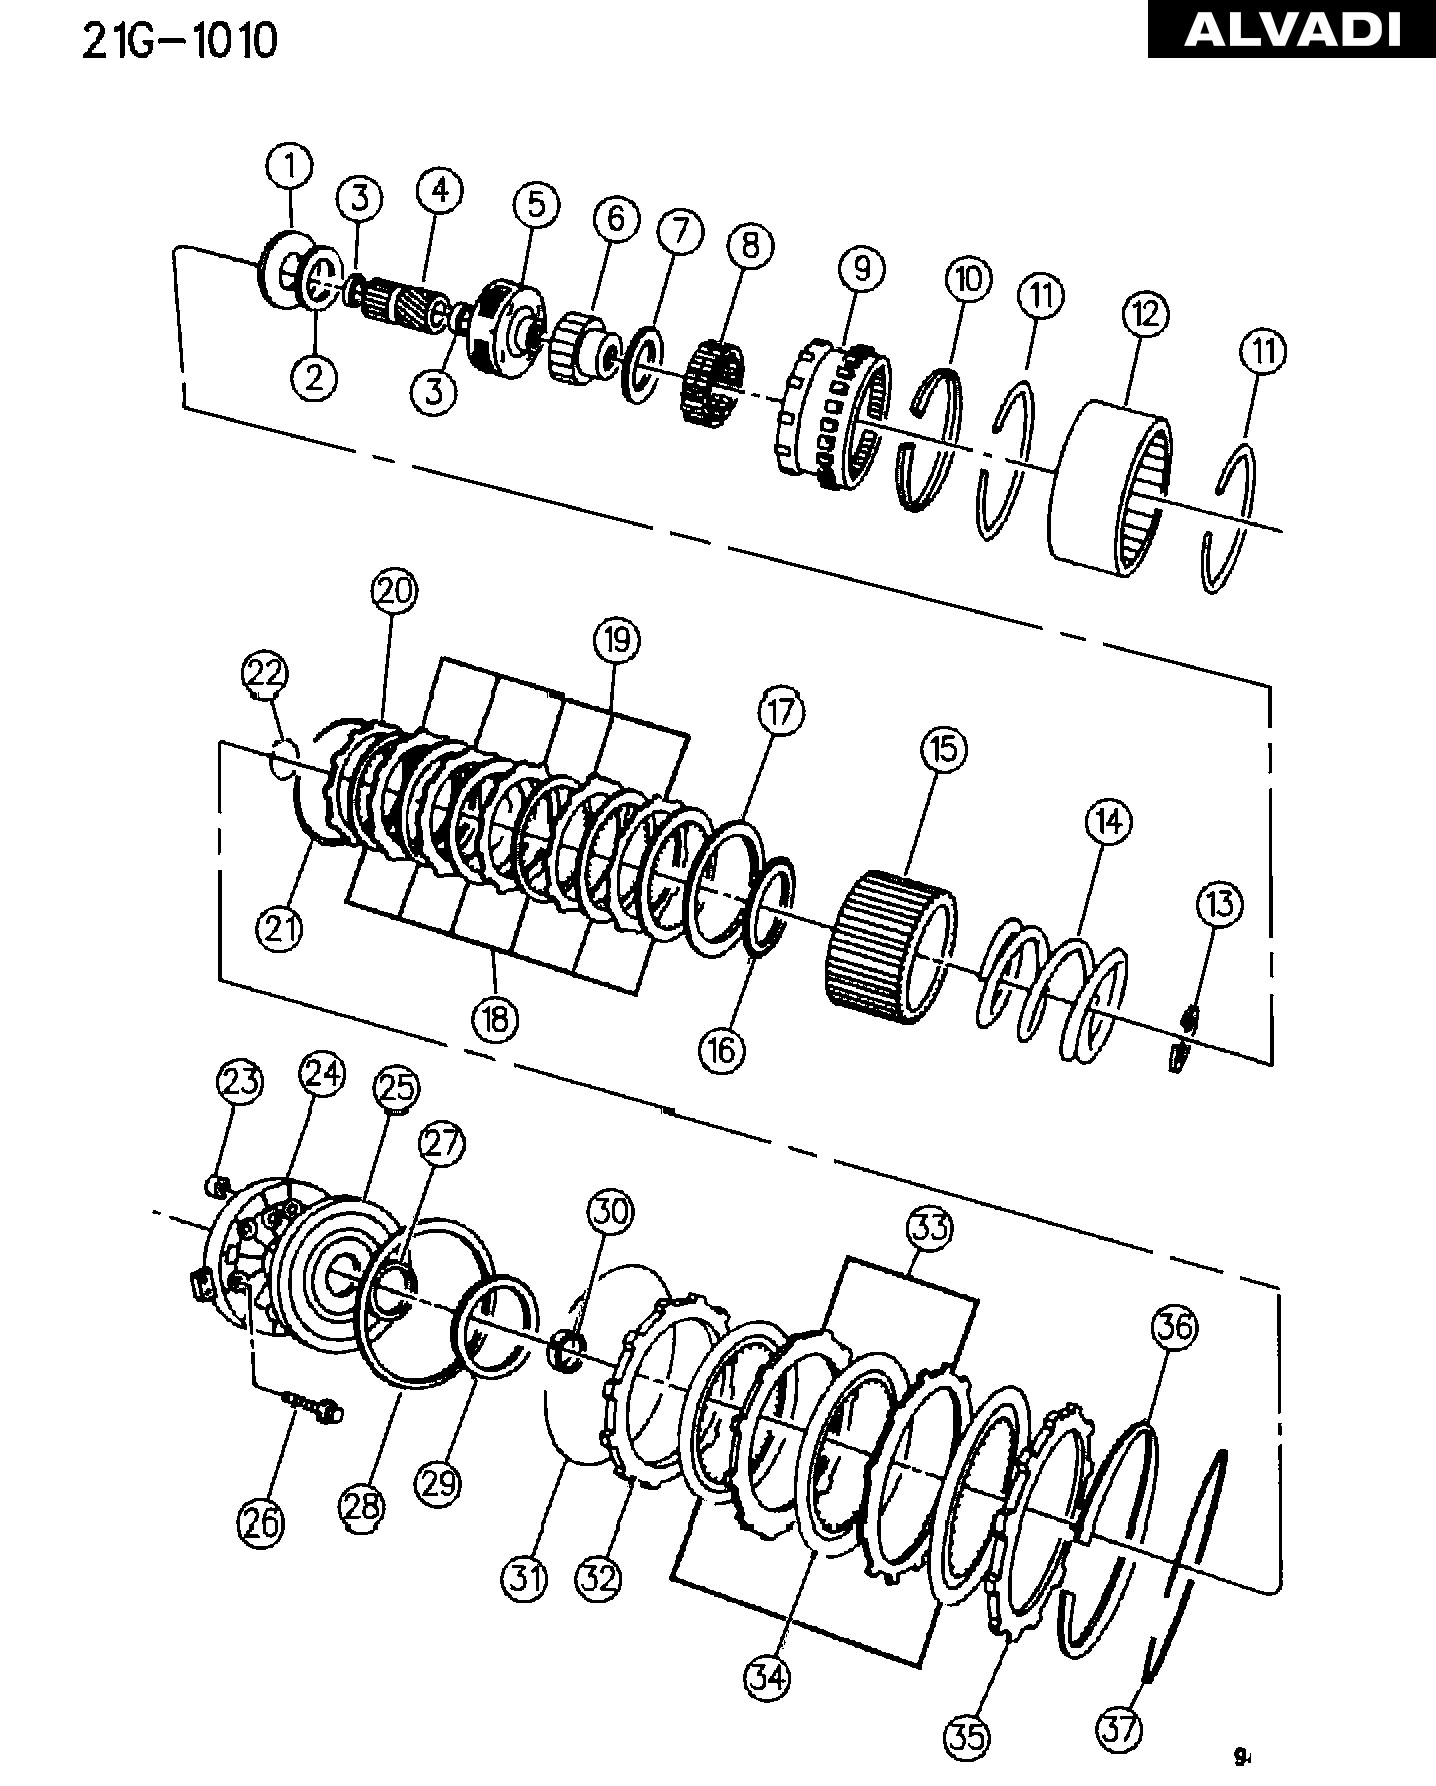 Clutch Diagram for A Manual Transmission Ram Clutch Overdrive with Gear Train Automatic Transmission 4